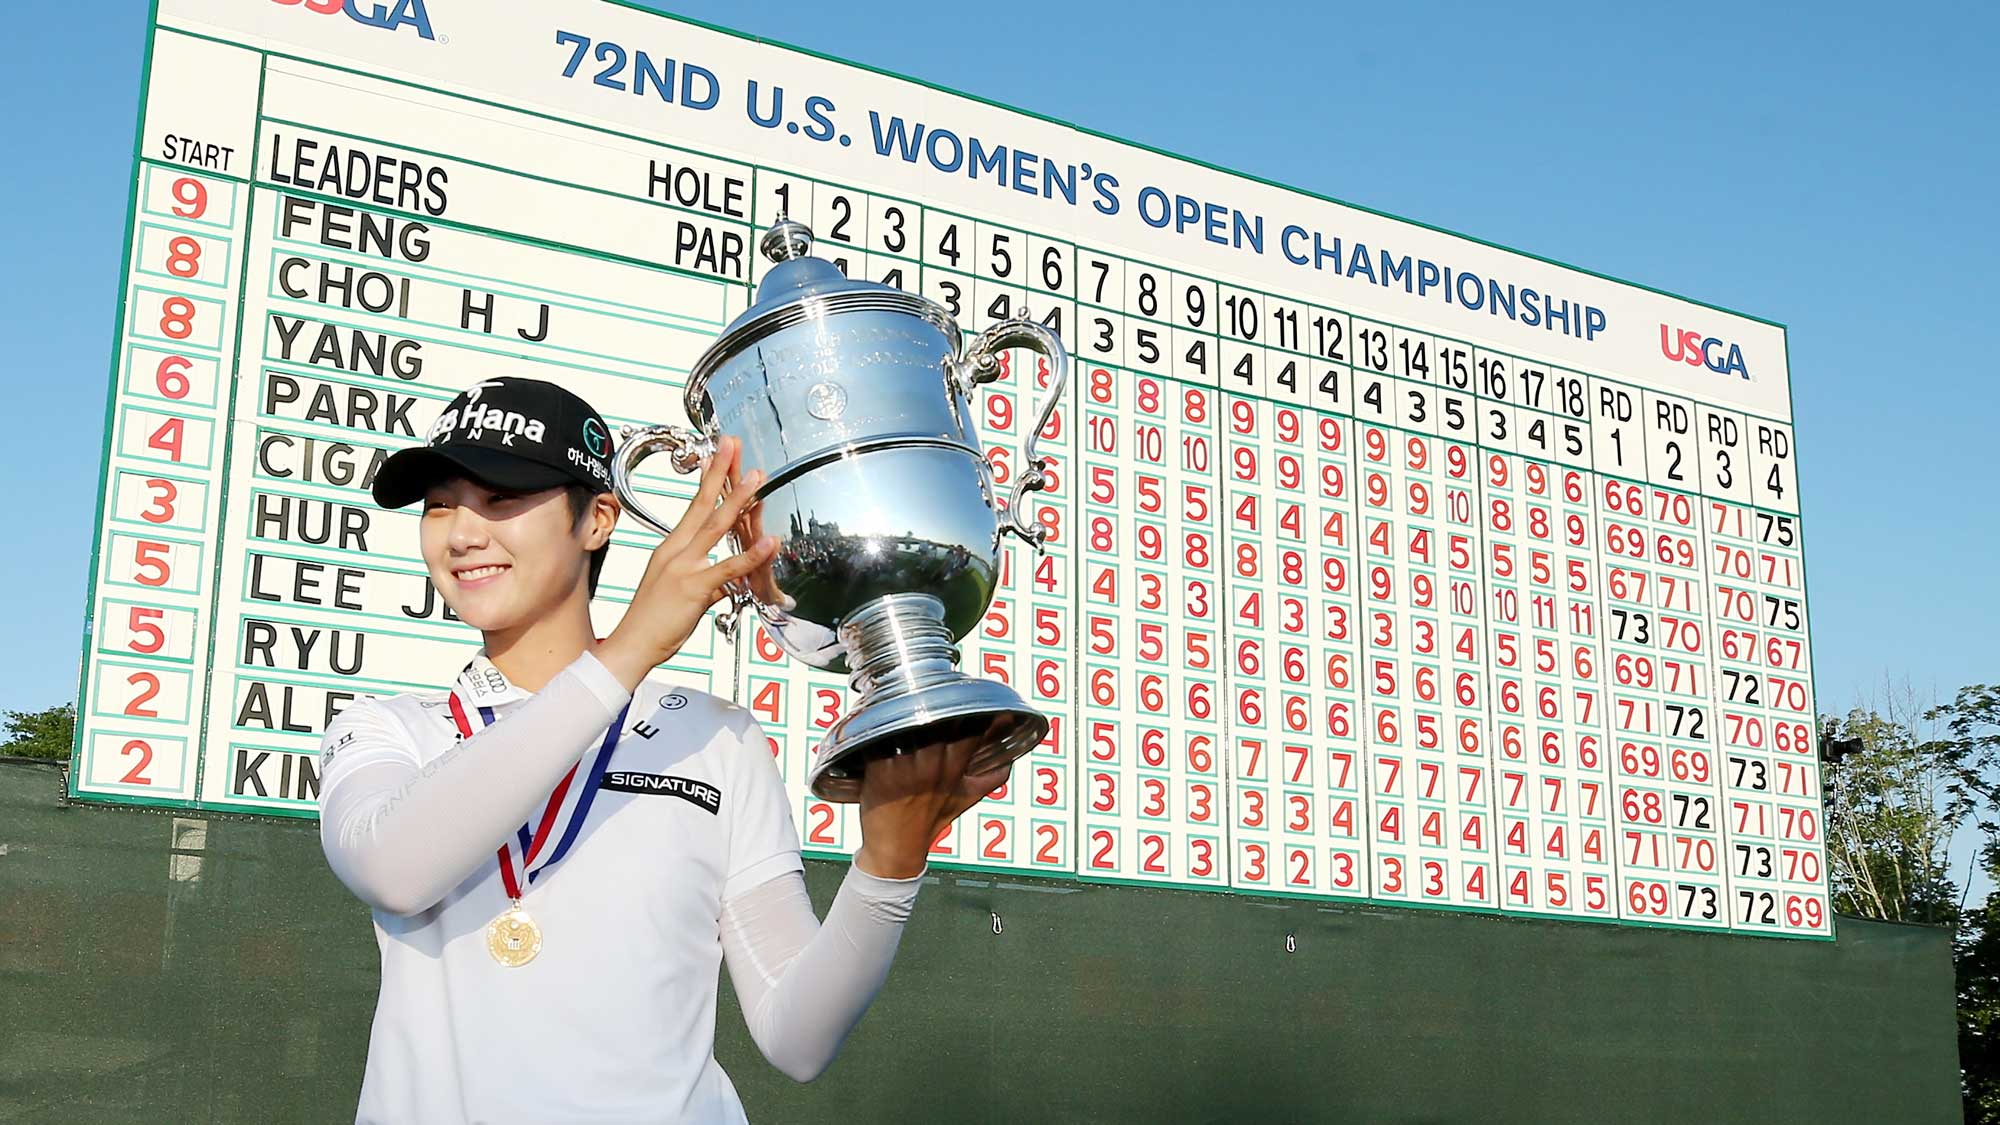 e9757f6e310 Sung Hyun Park of Korea poses with the trophy after the final round of the  U.S. Women s Open on July 16